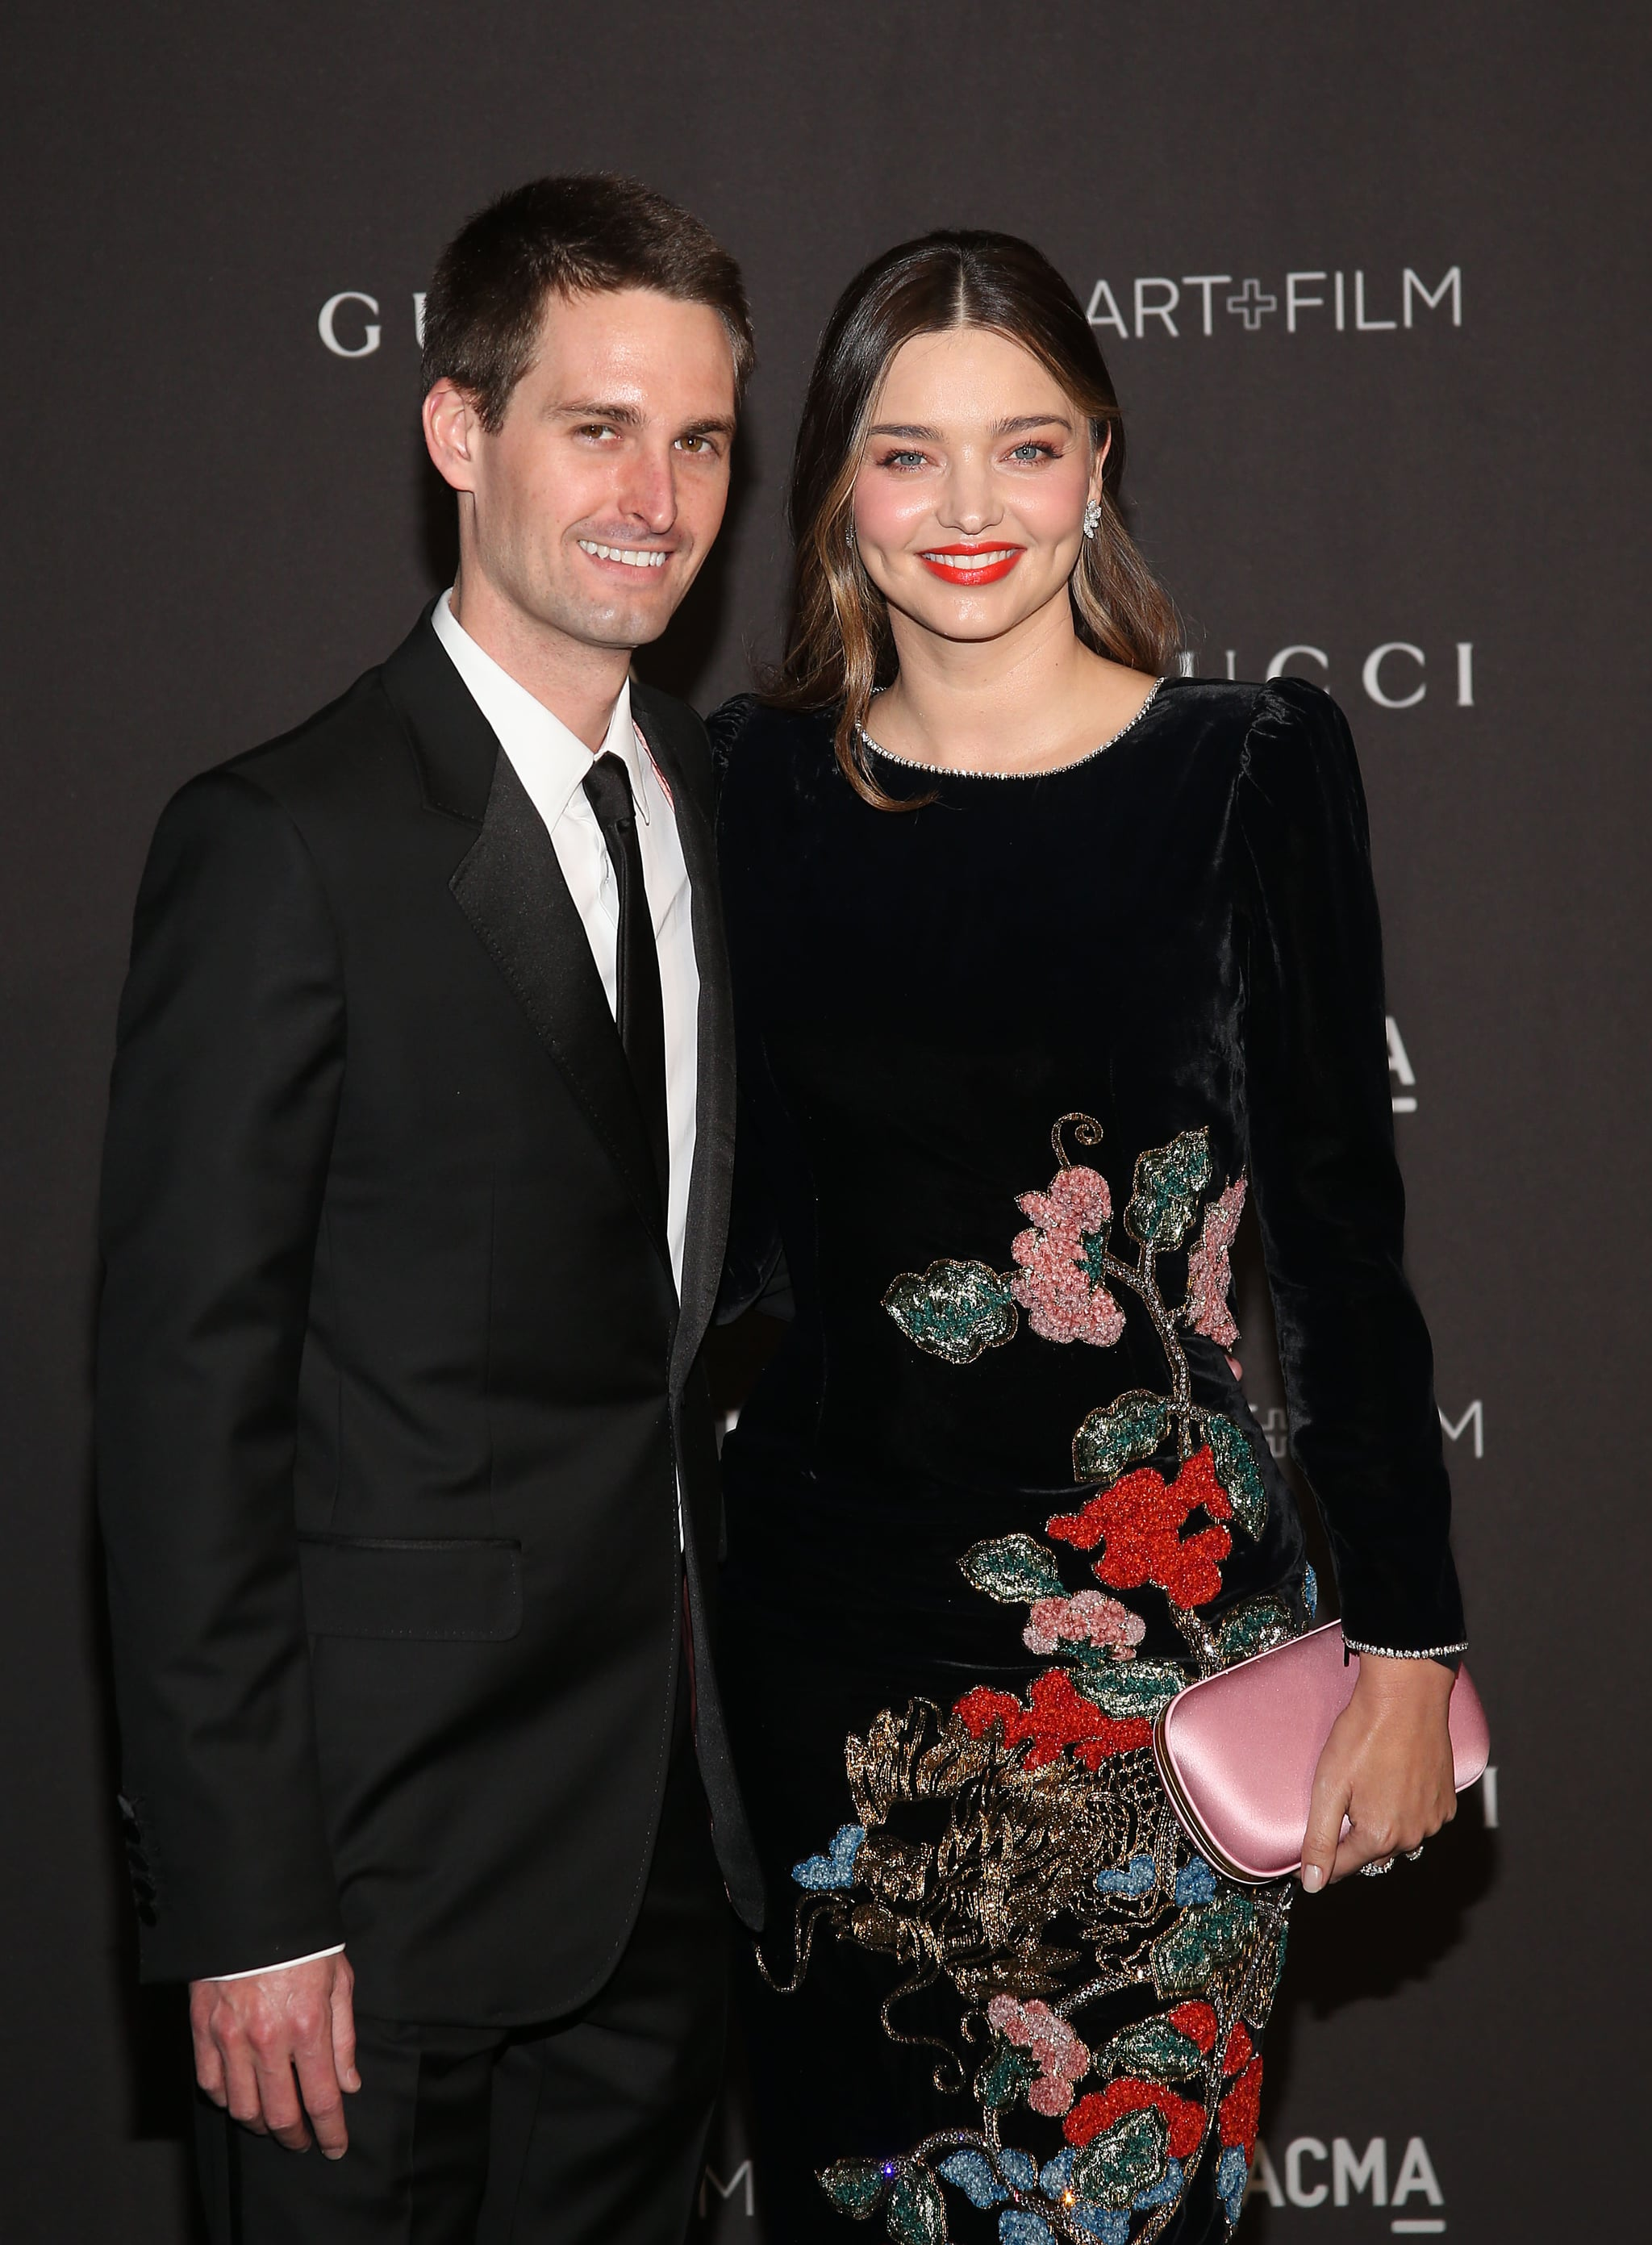 LOS ANGELES, CALIFORNIA - NOVEMBER 03: Miranda Kerr and Evan Spiegel attend the 2018 LACMA Art + Film Gala at LACMA on November 03, 2018 in Los Angeles, California. (Photo by Jesse Grant/Getty Images)